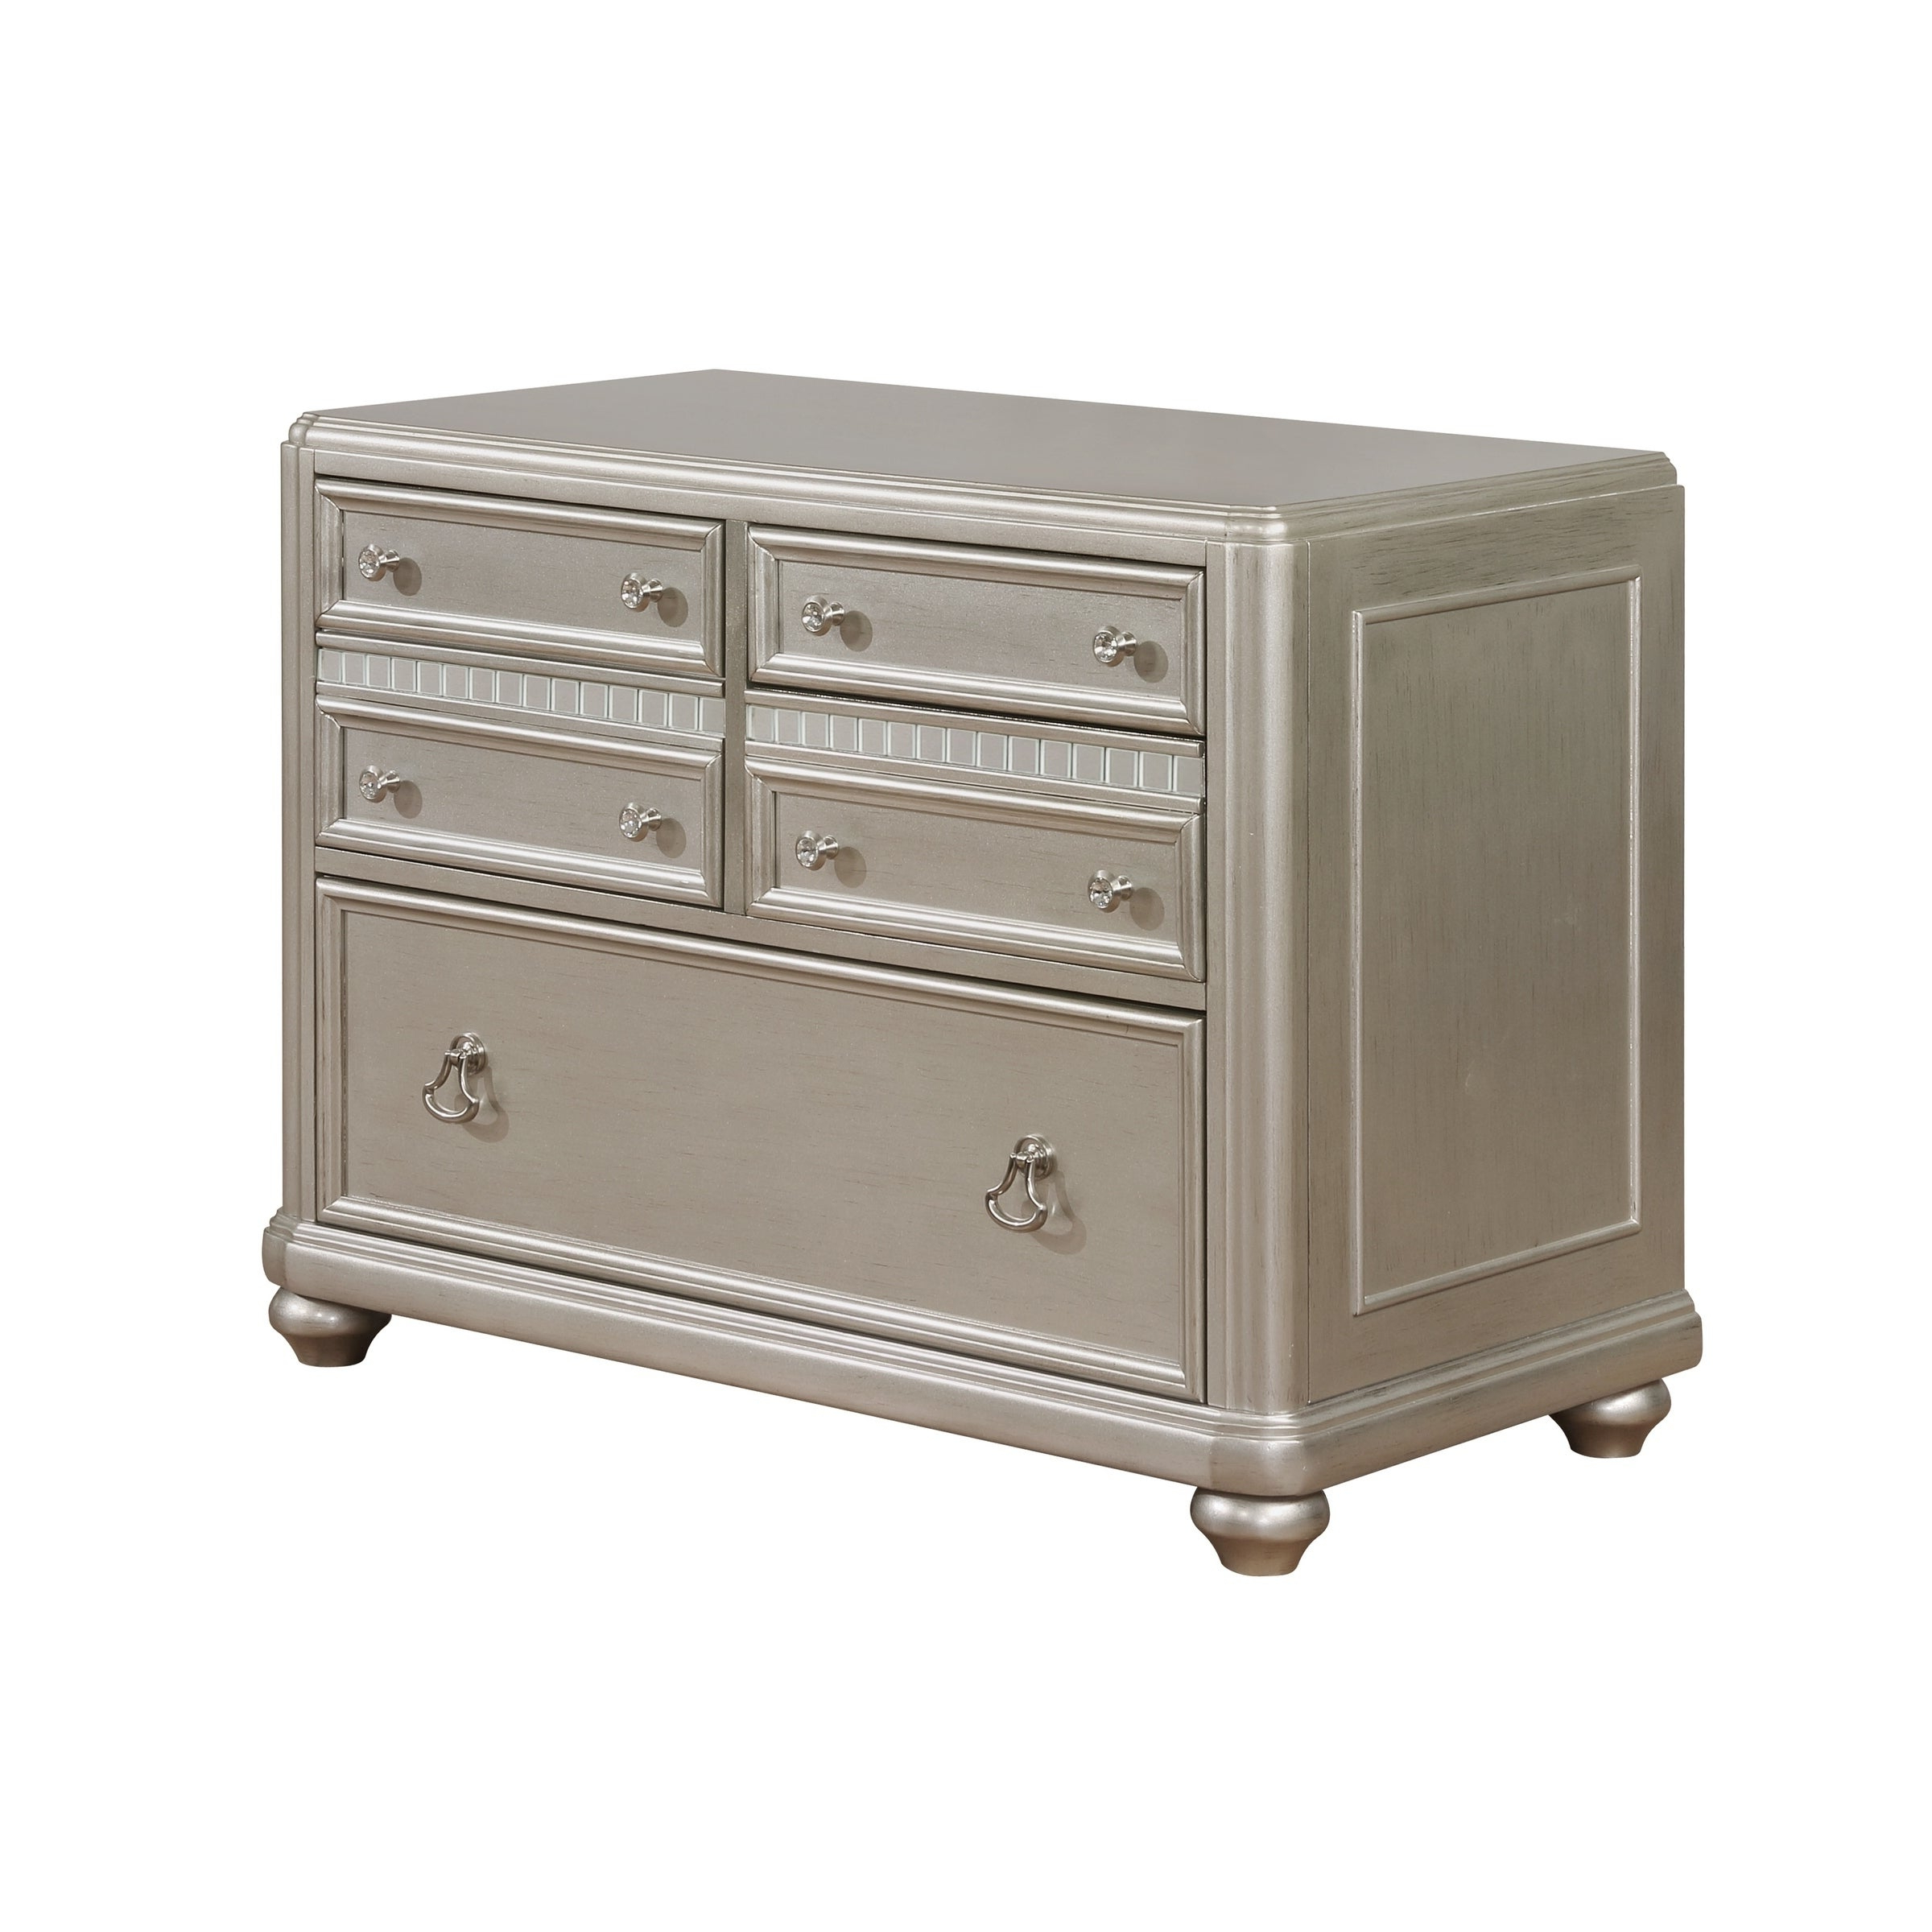 Payton Serving Sideboards Inside Most Up To Date Coaster Ritzville Metallic Champagne Wood Finish 4 Drawer File Cabinet (View 17 of 20)